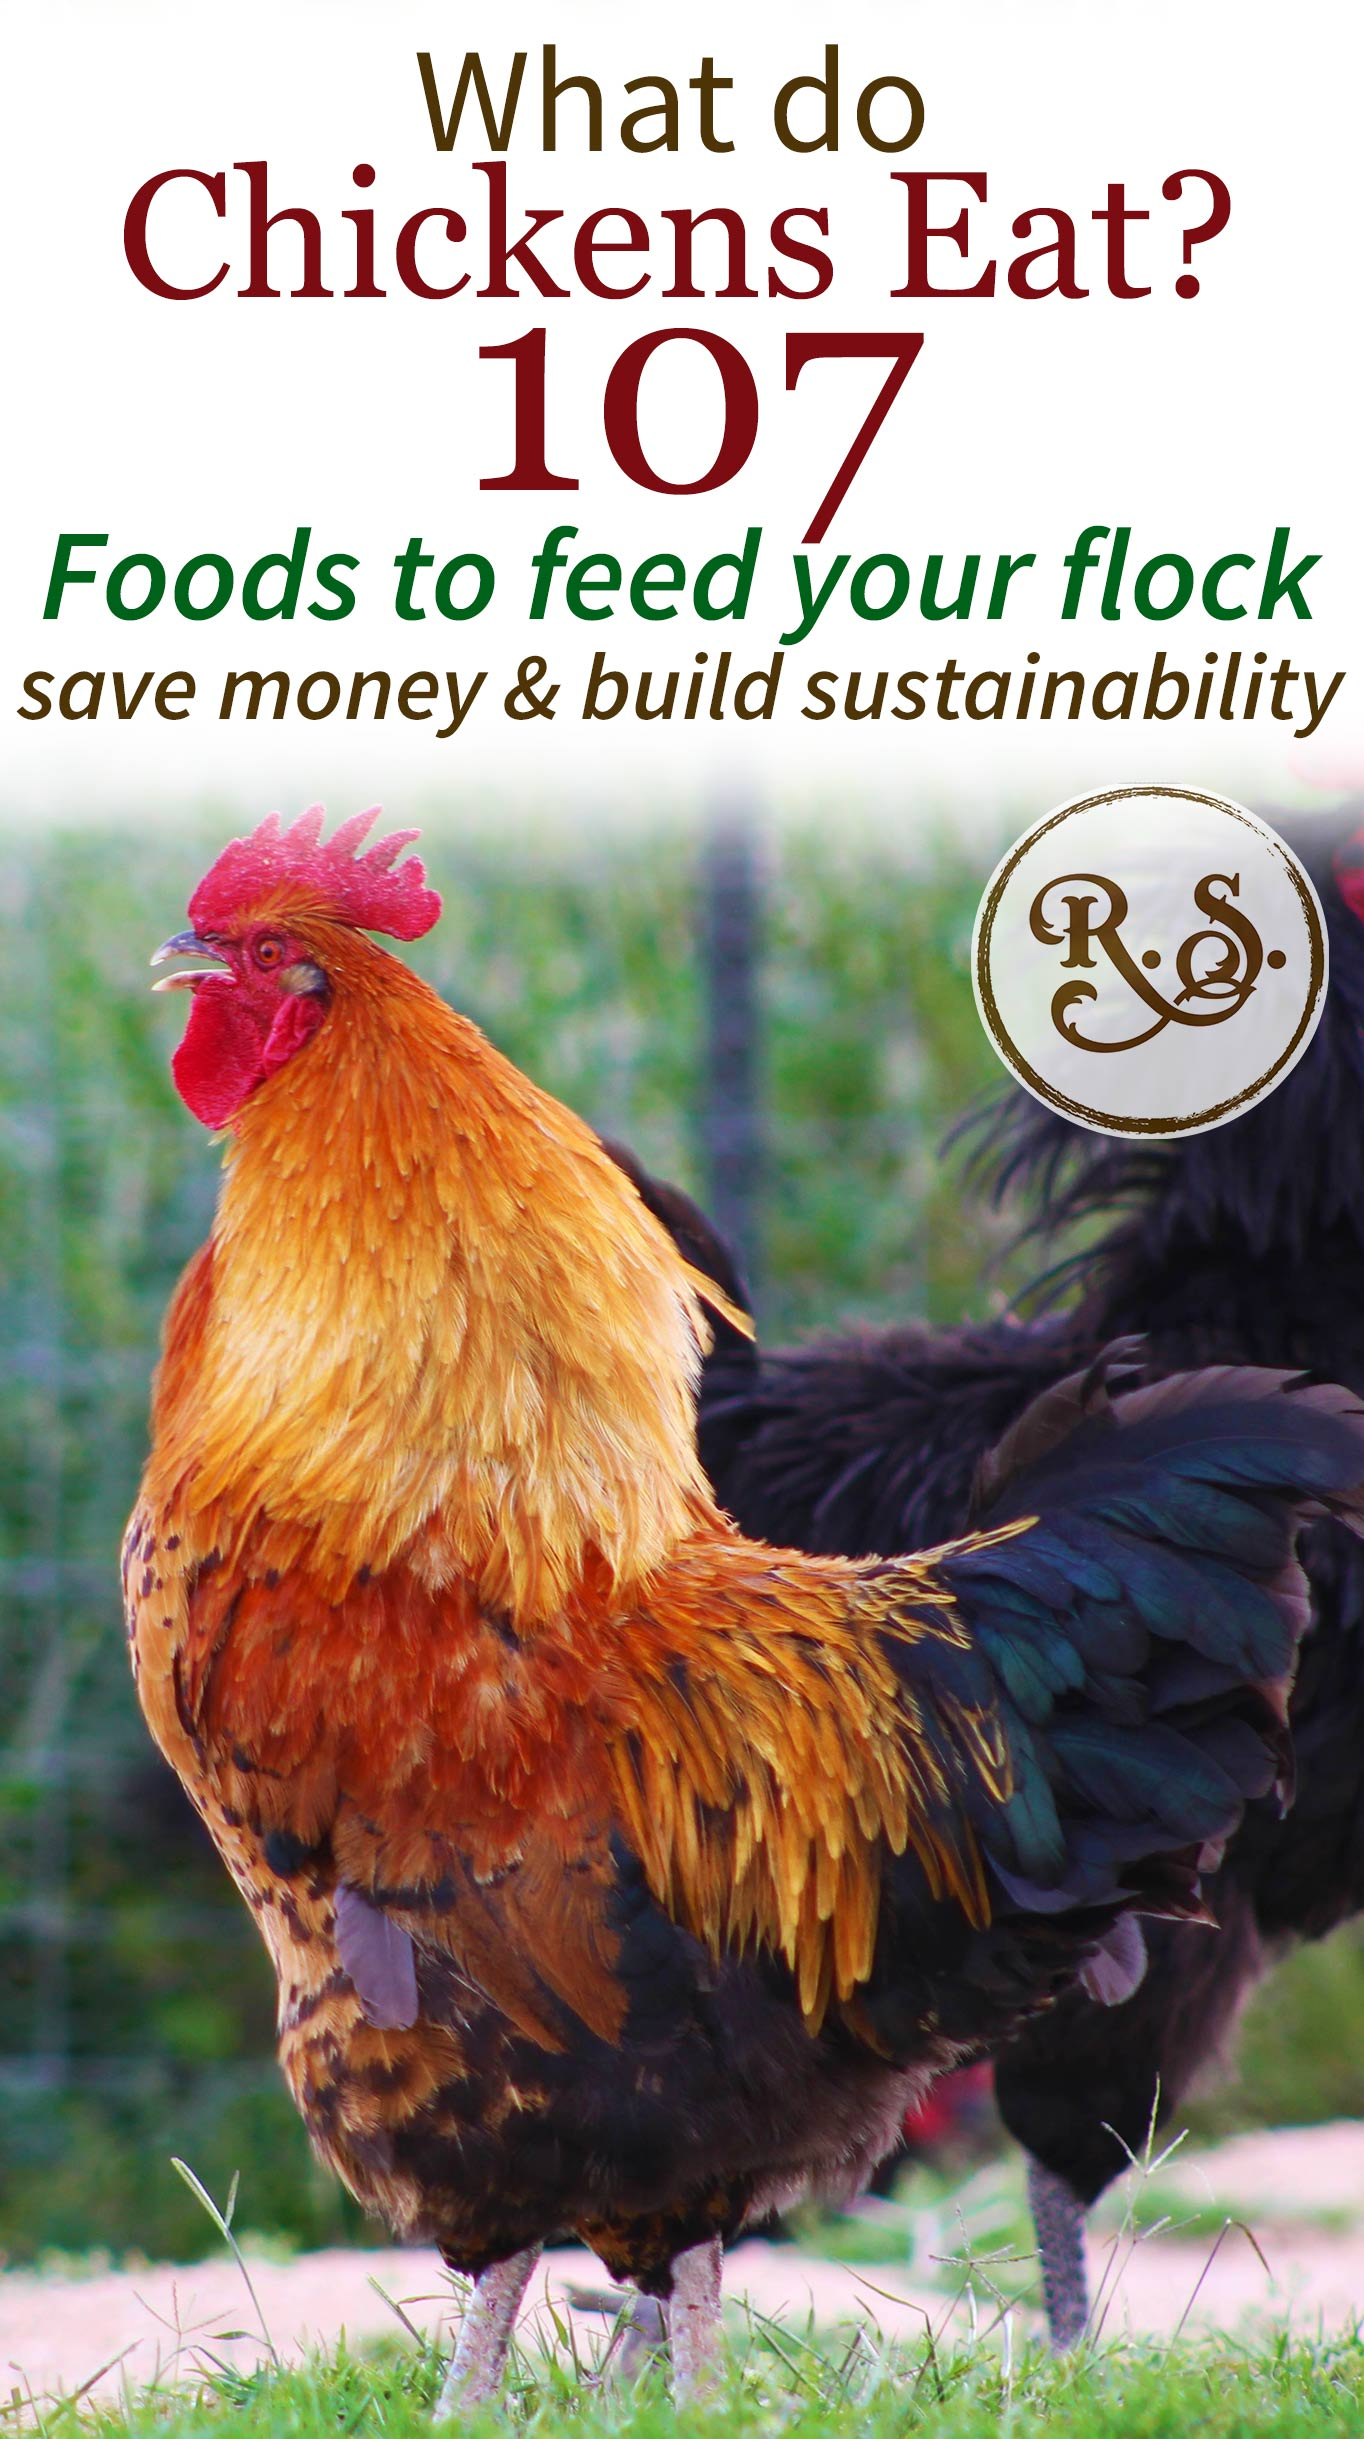 What do chickens eat? Here is your guide to feeding chickens. With 107 kinds of food to feed your backyard hens and roosters. Perfect DIY list of ideas to have for beginners.